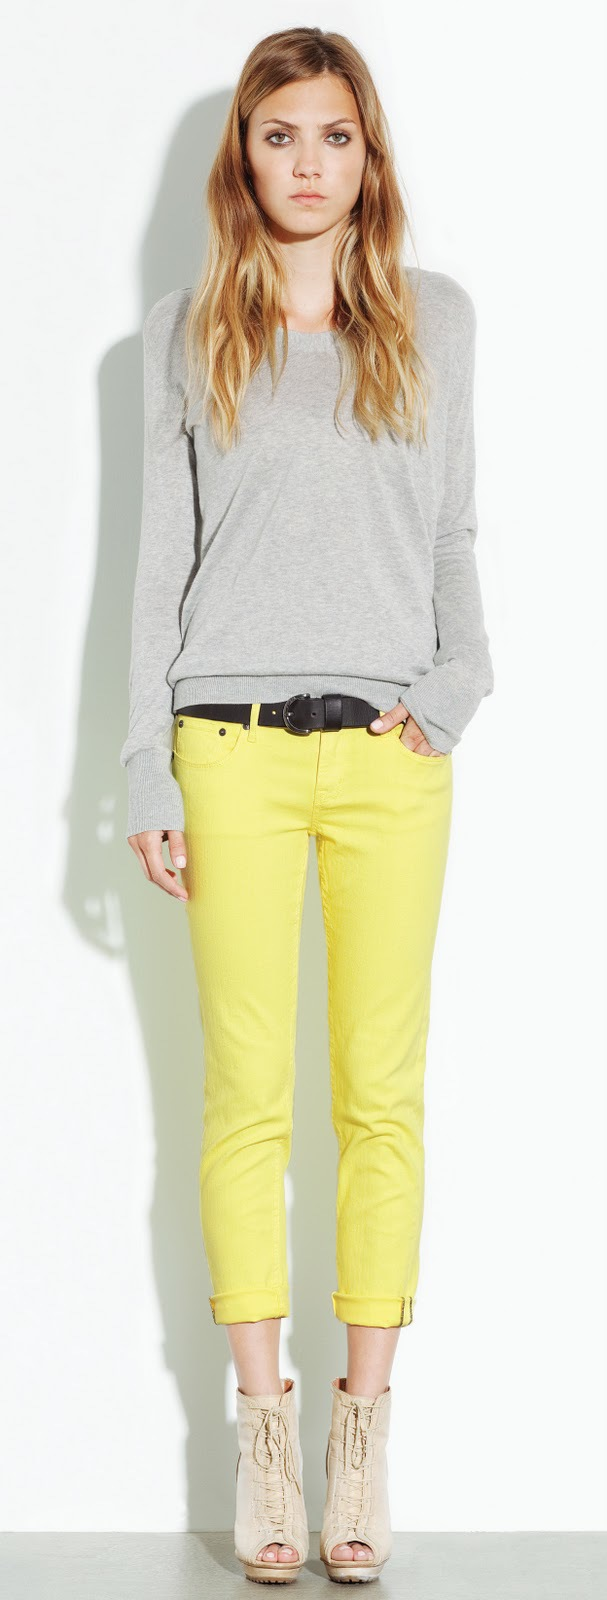 dkny-jeans-yellow-spring-summer-2012.jpg